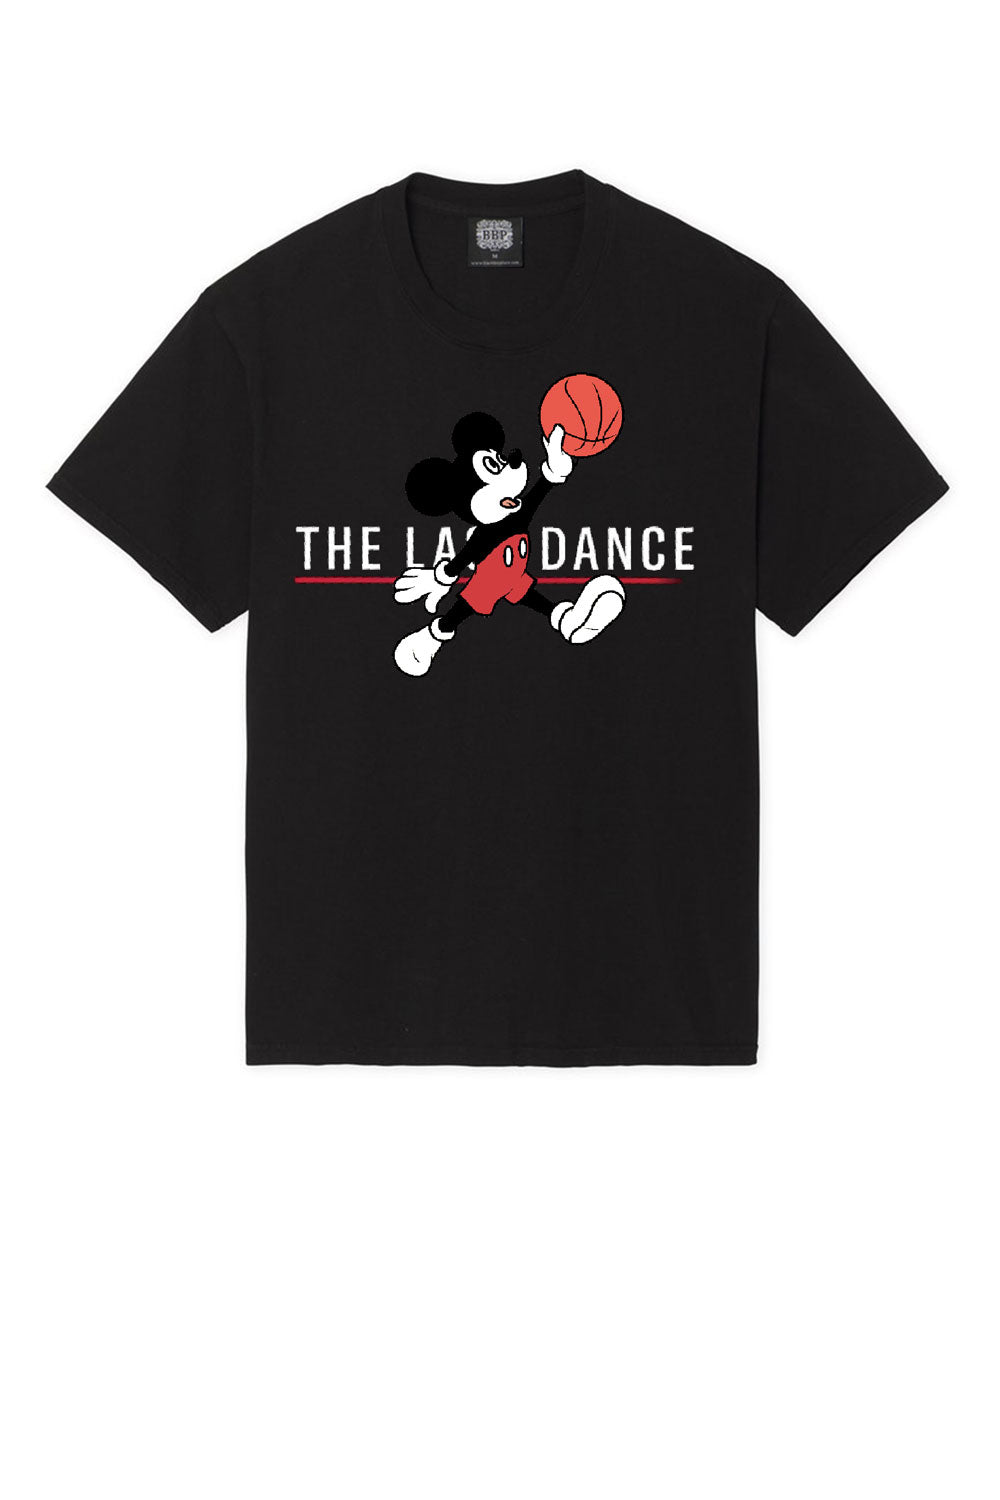 Leroyaume T-shirt Mick Fly The Last dance Noir